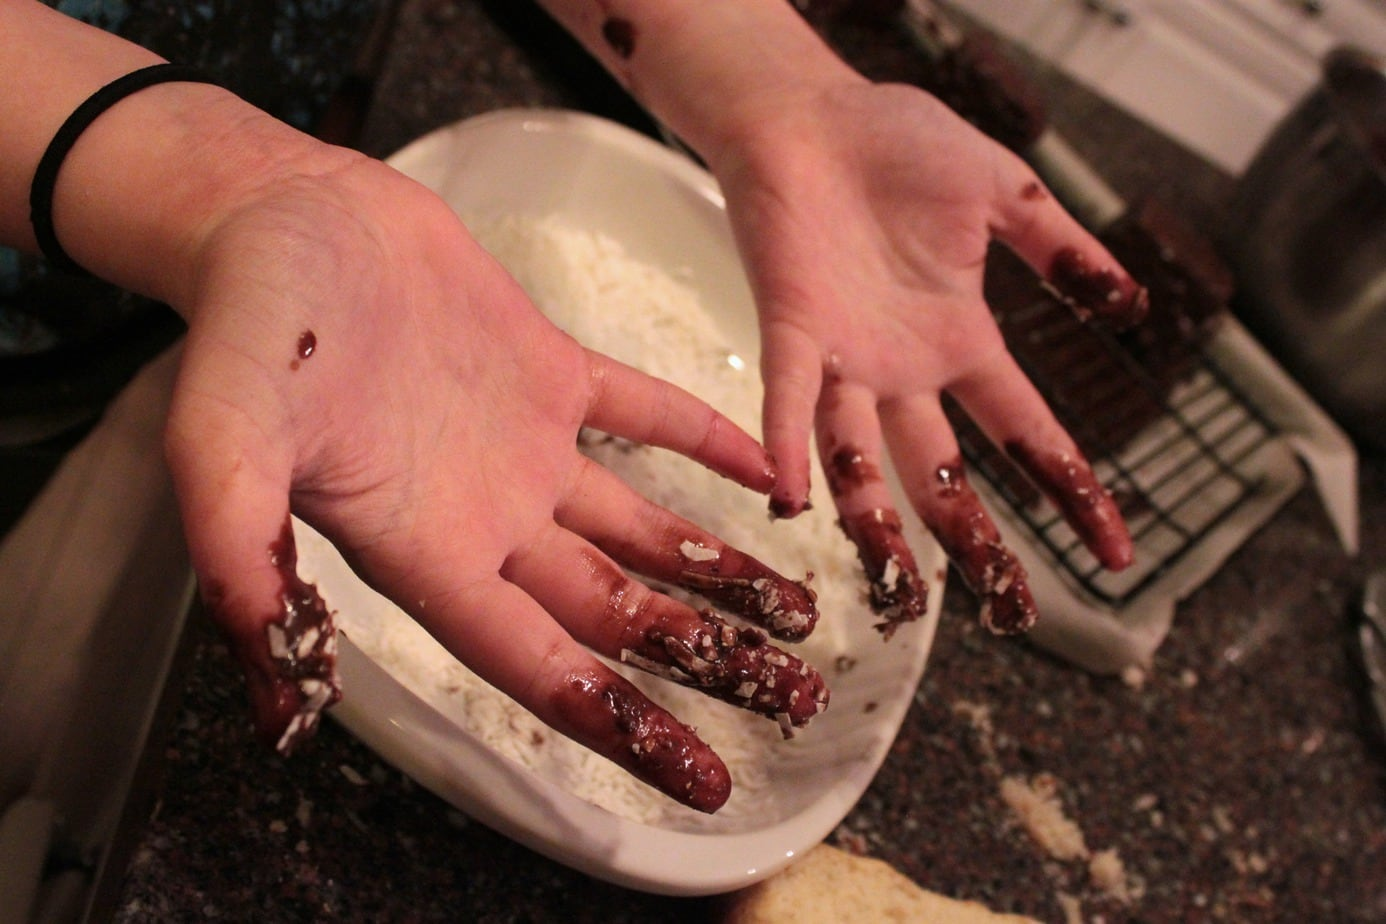 A pair of hands decorated in chocolate and coconut.